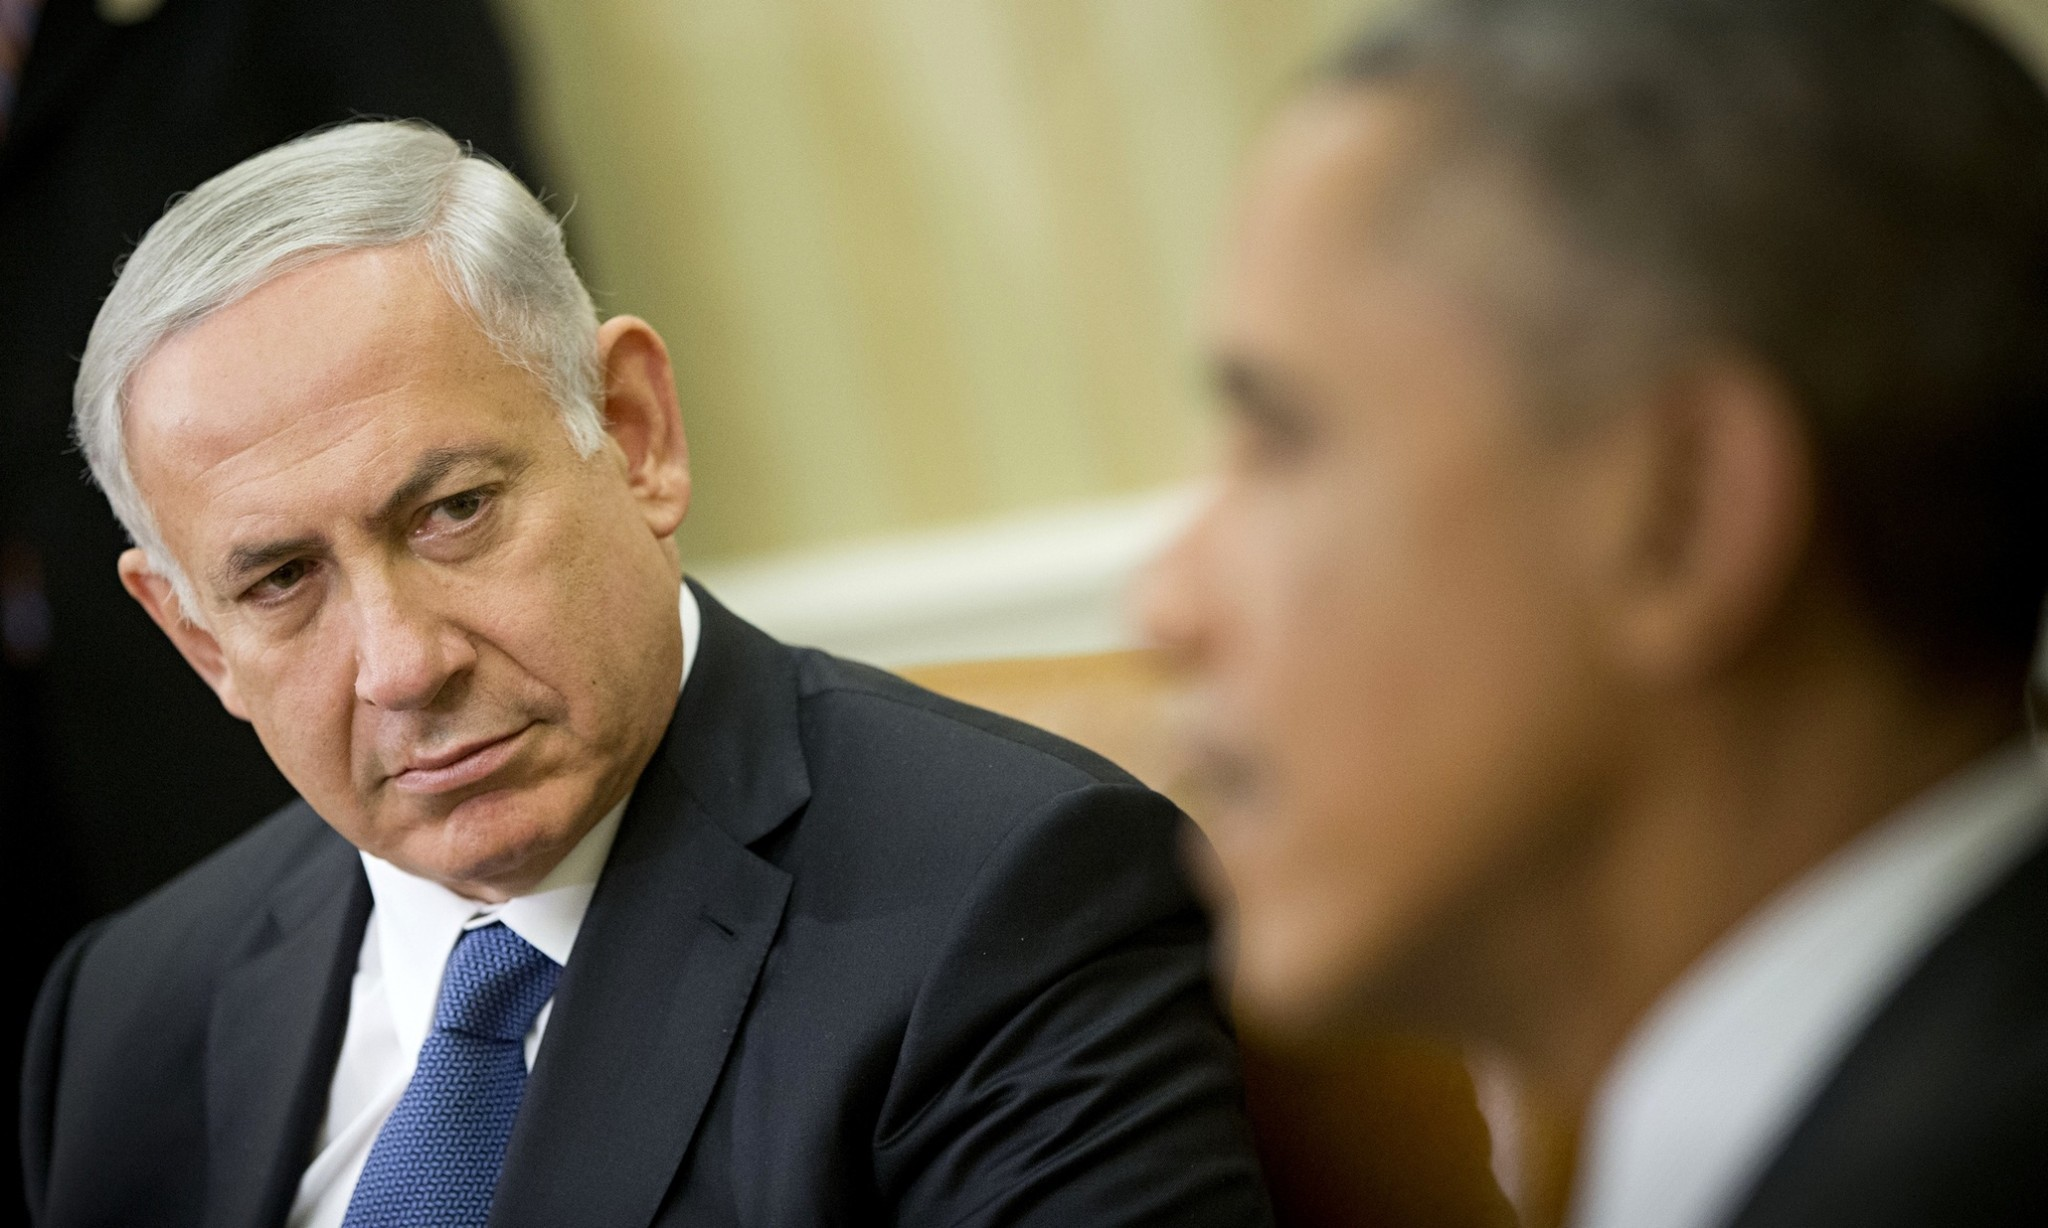 Netanyahu's Congress speech scuppers bipartisan unity on support for Israel